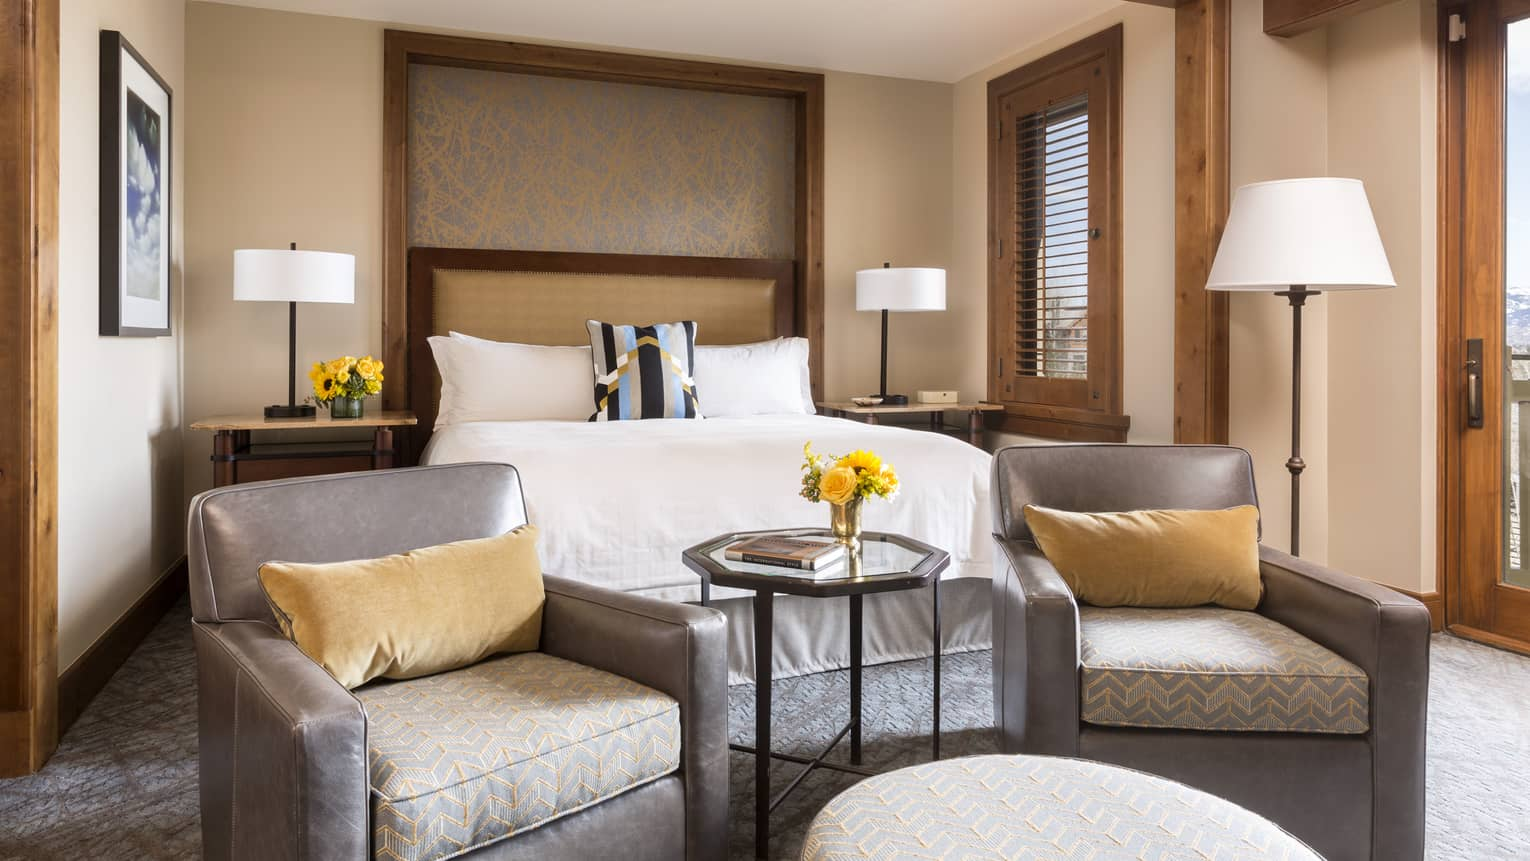 Valley-View Room grey armchairs with yellow velvet pillows in front of bed, lamps